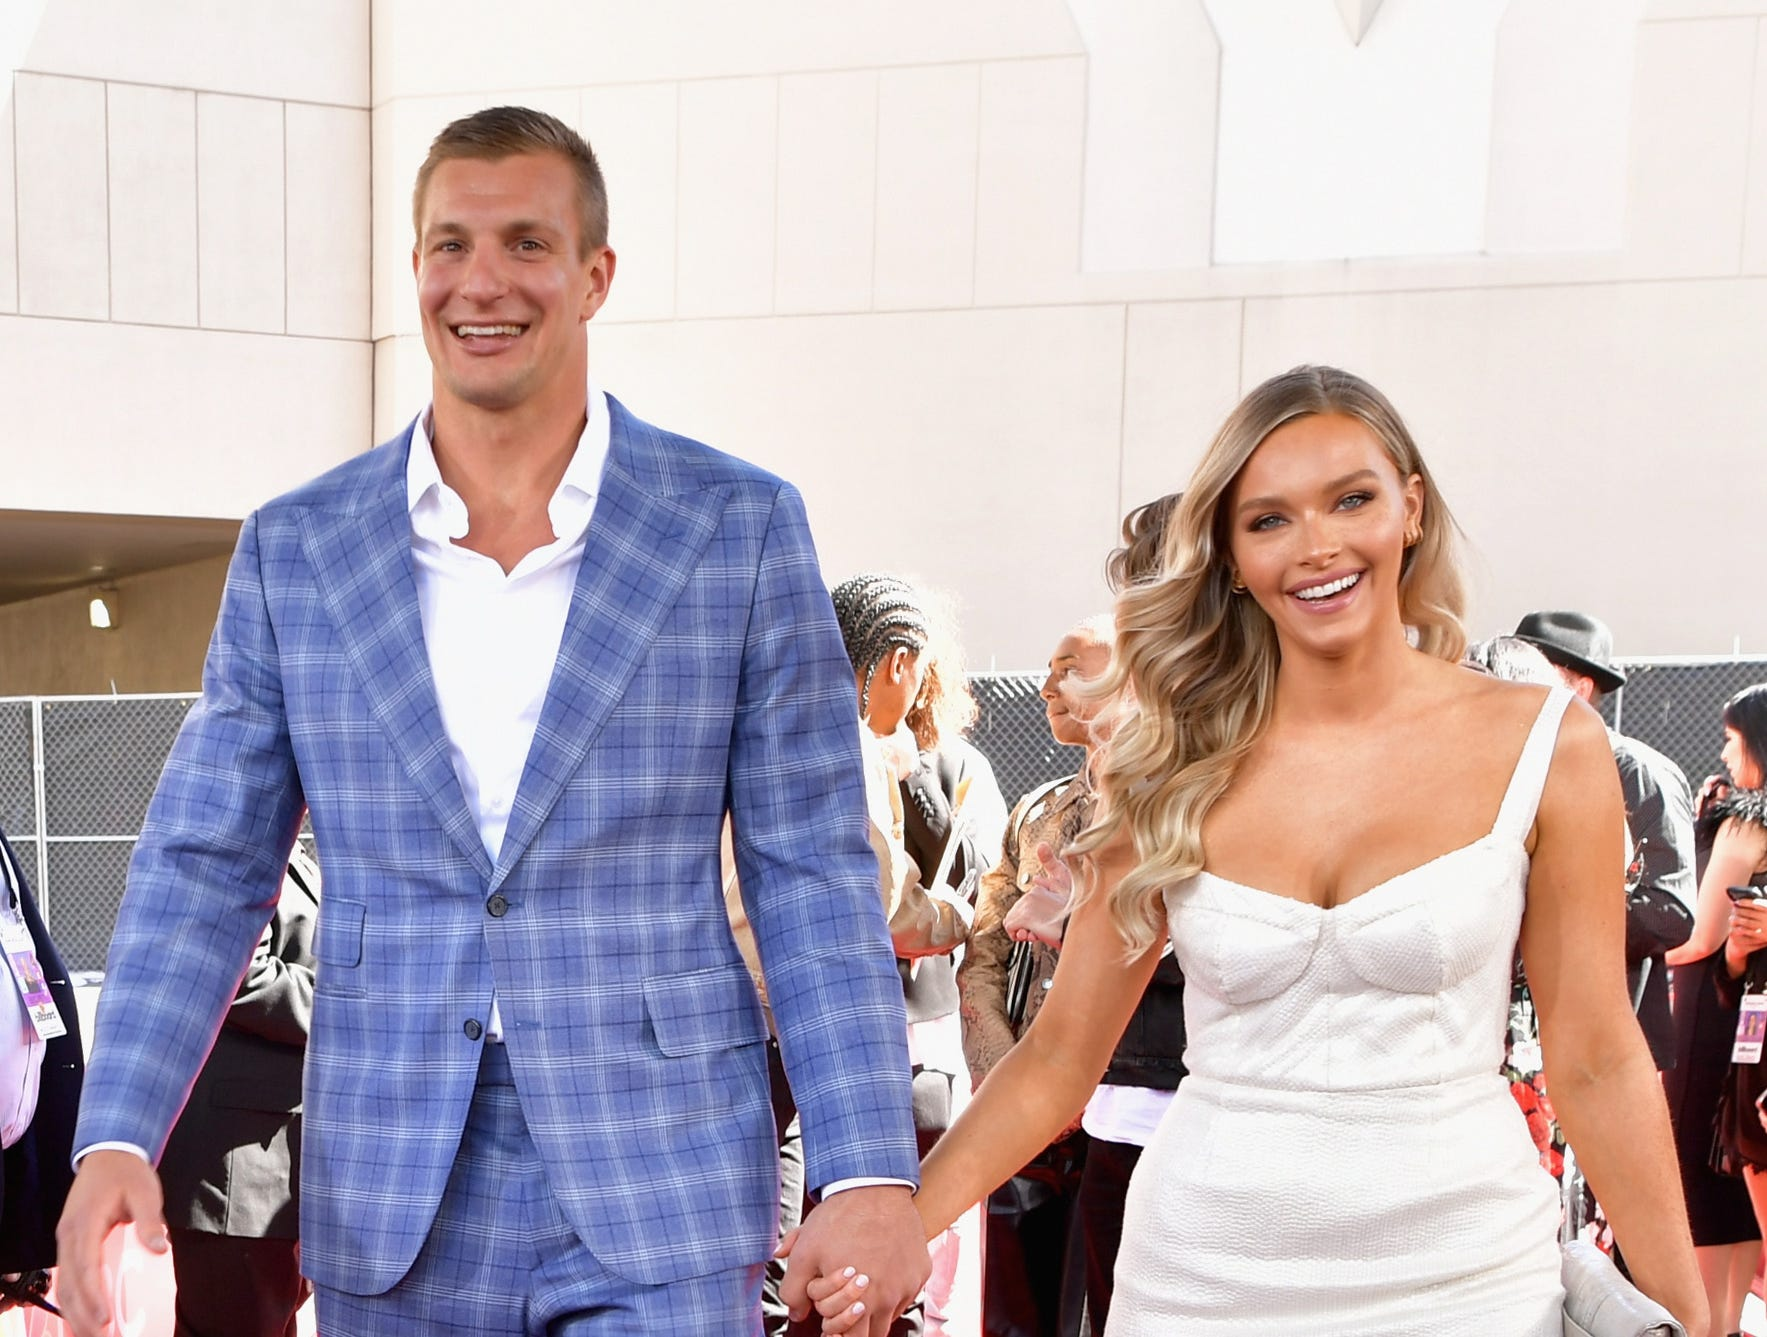 Rob Gronkowski and Camille Kostek attend the 2019 Billboard Music Awards at MGM Grand Garden Arena on May 1, 2019 in Las Vegas, Nevada.